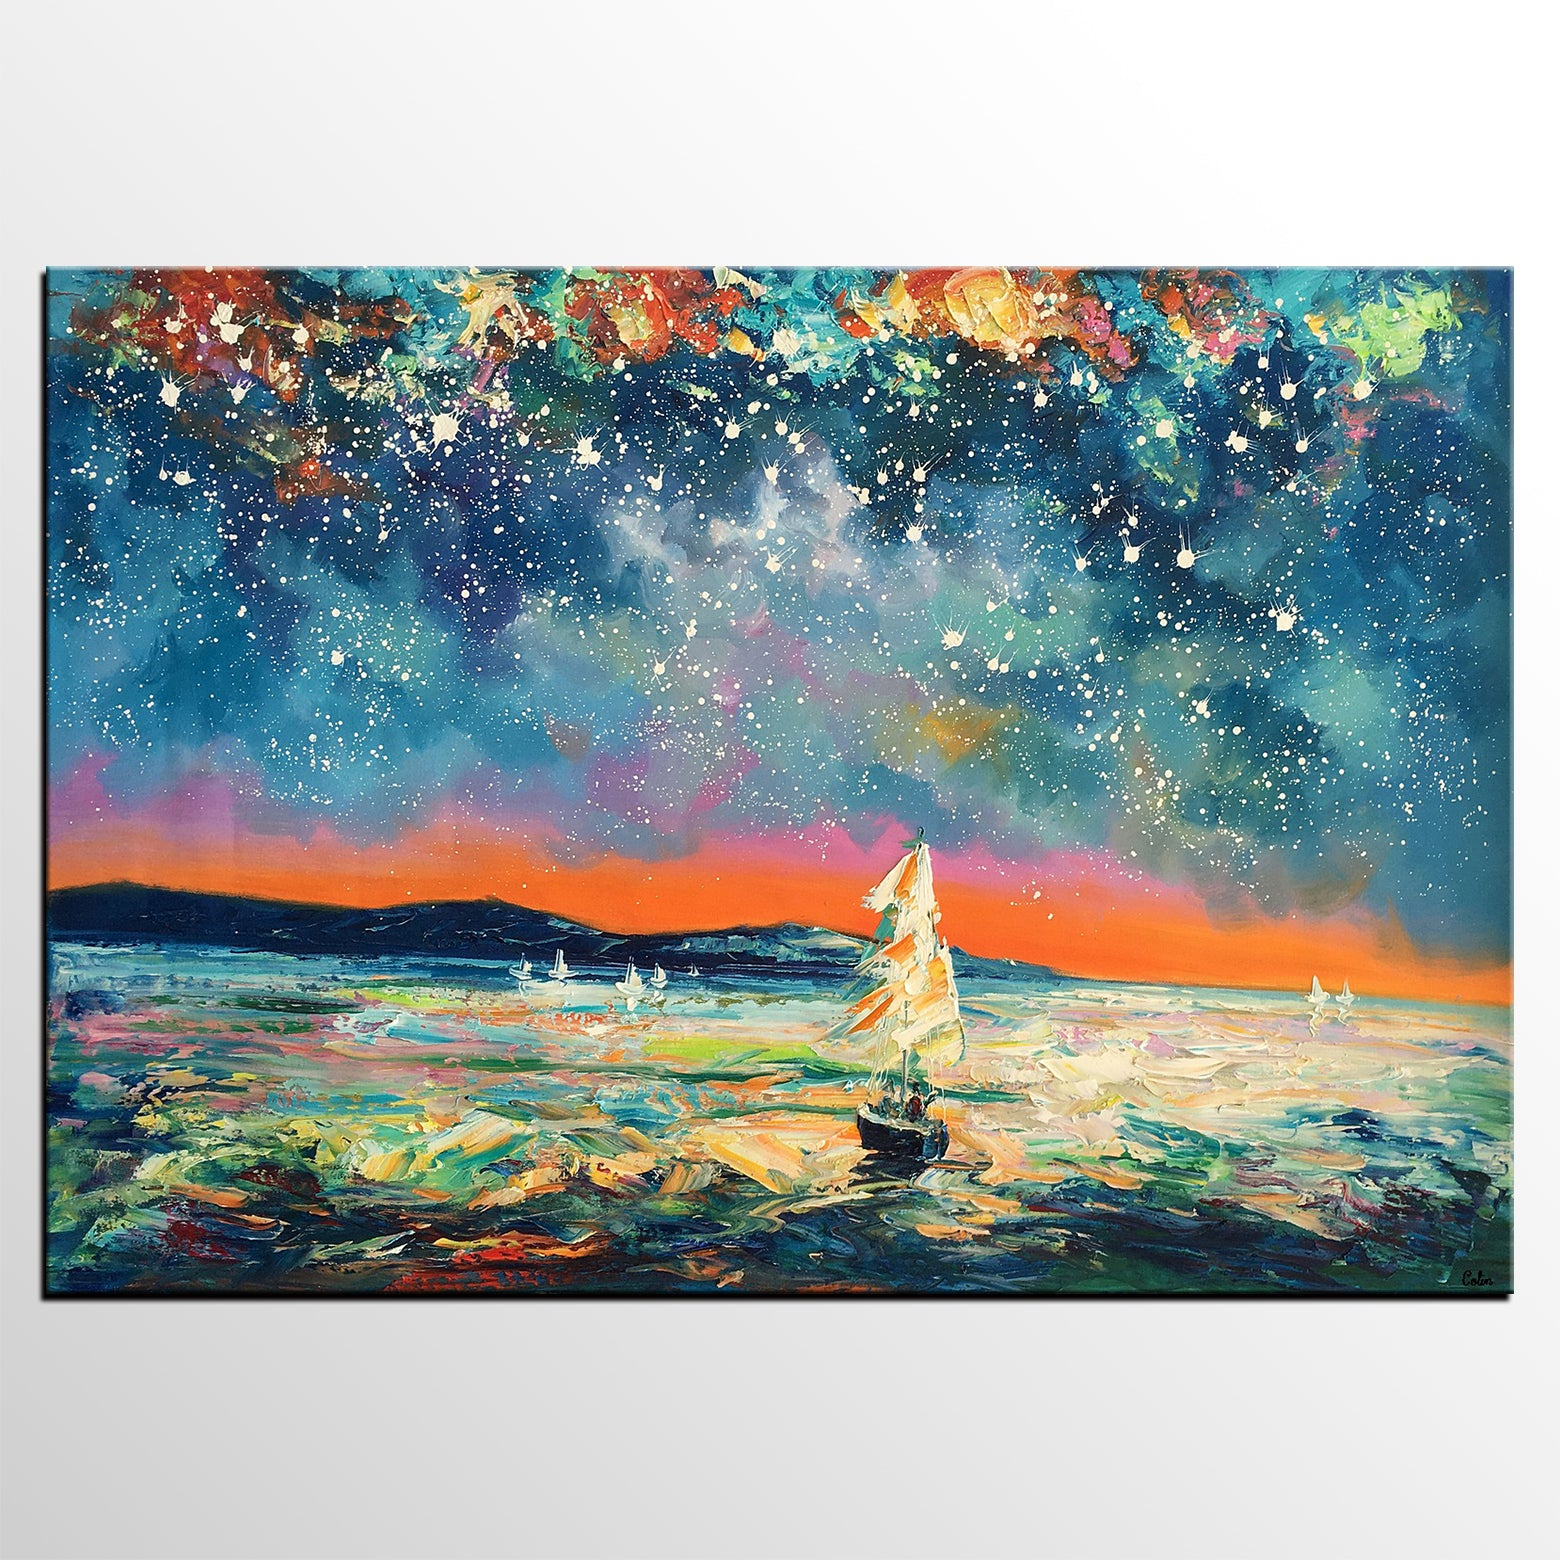 Modern Abstract Art, Oil Painting, Starry Night Sky, Landscape Painting, Bedroom Wall Art - artworkcanvas